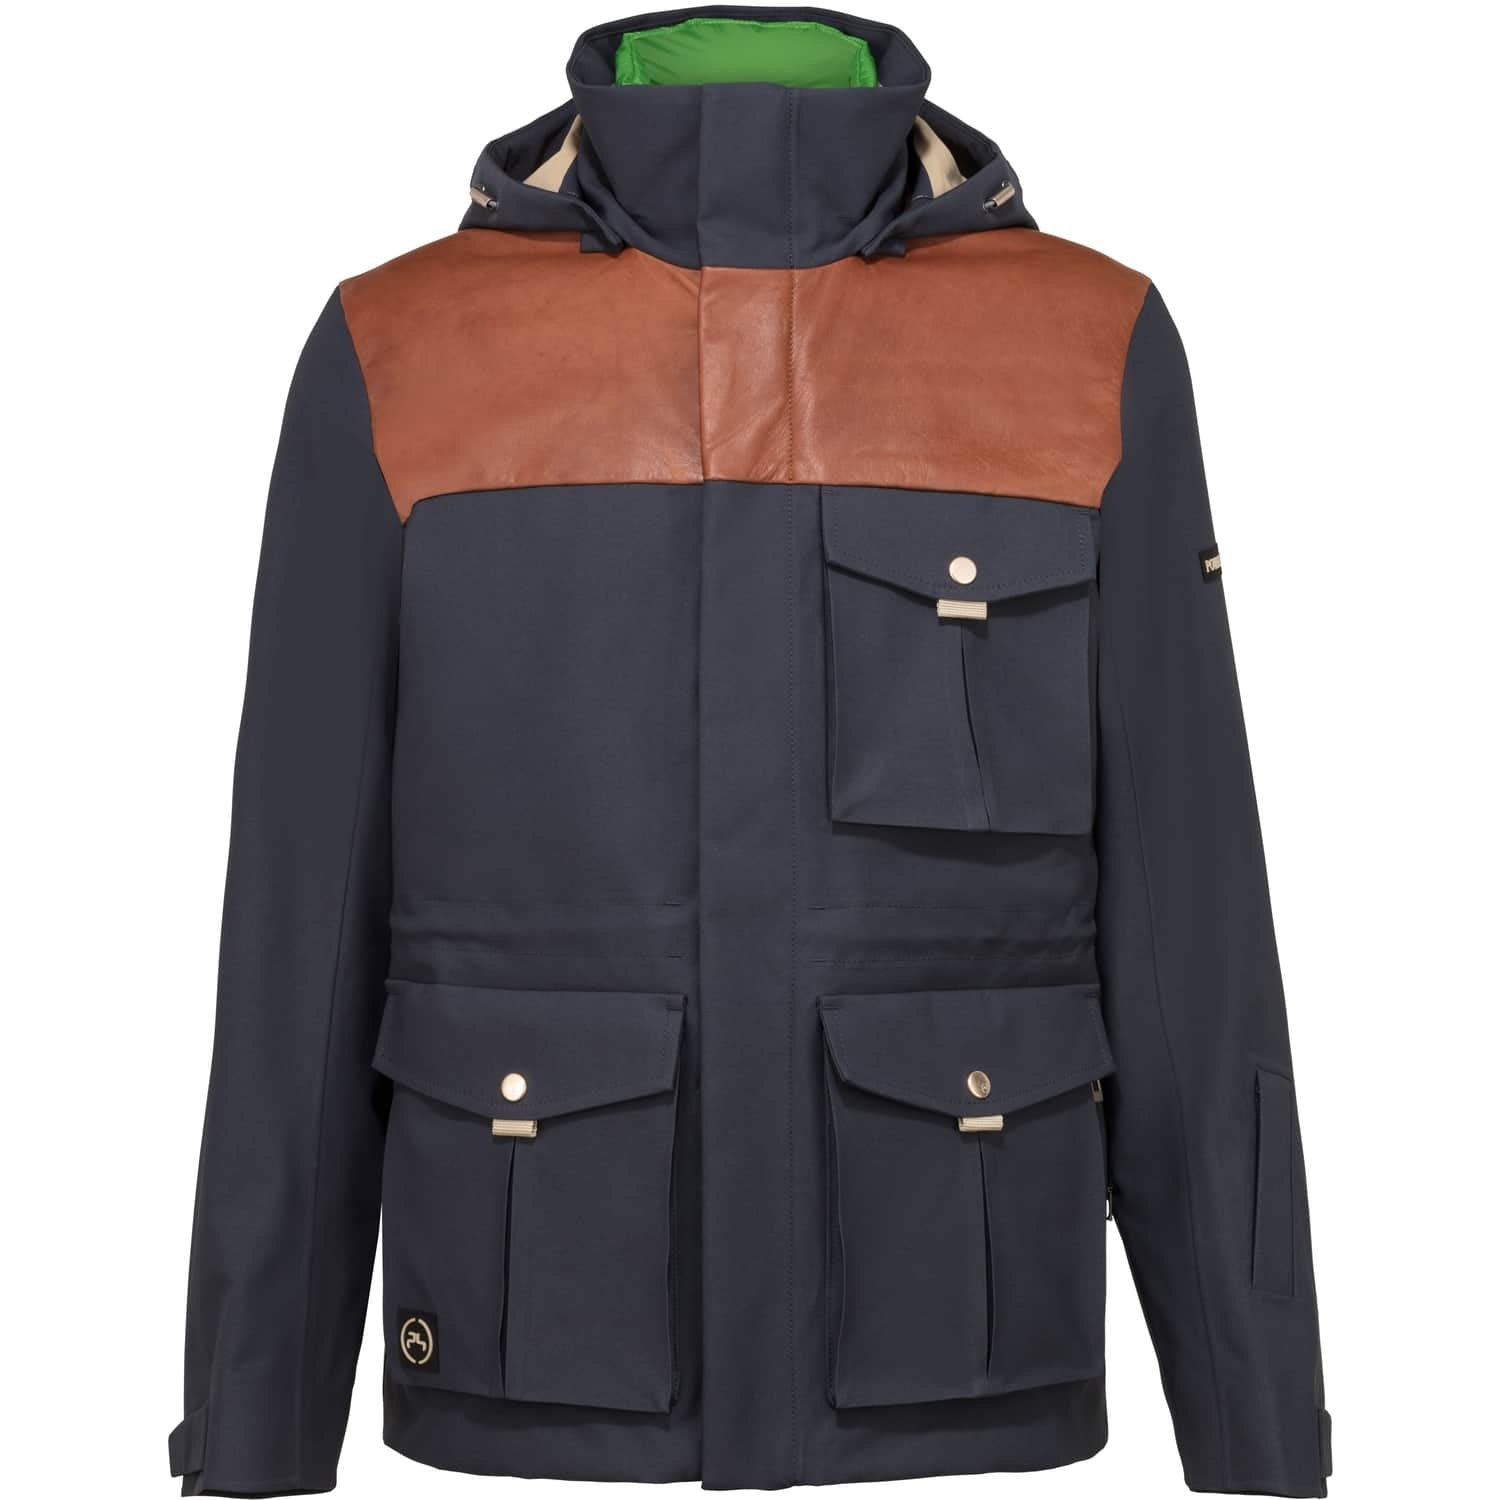 Teton 3 Season Jacket